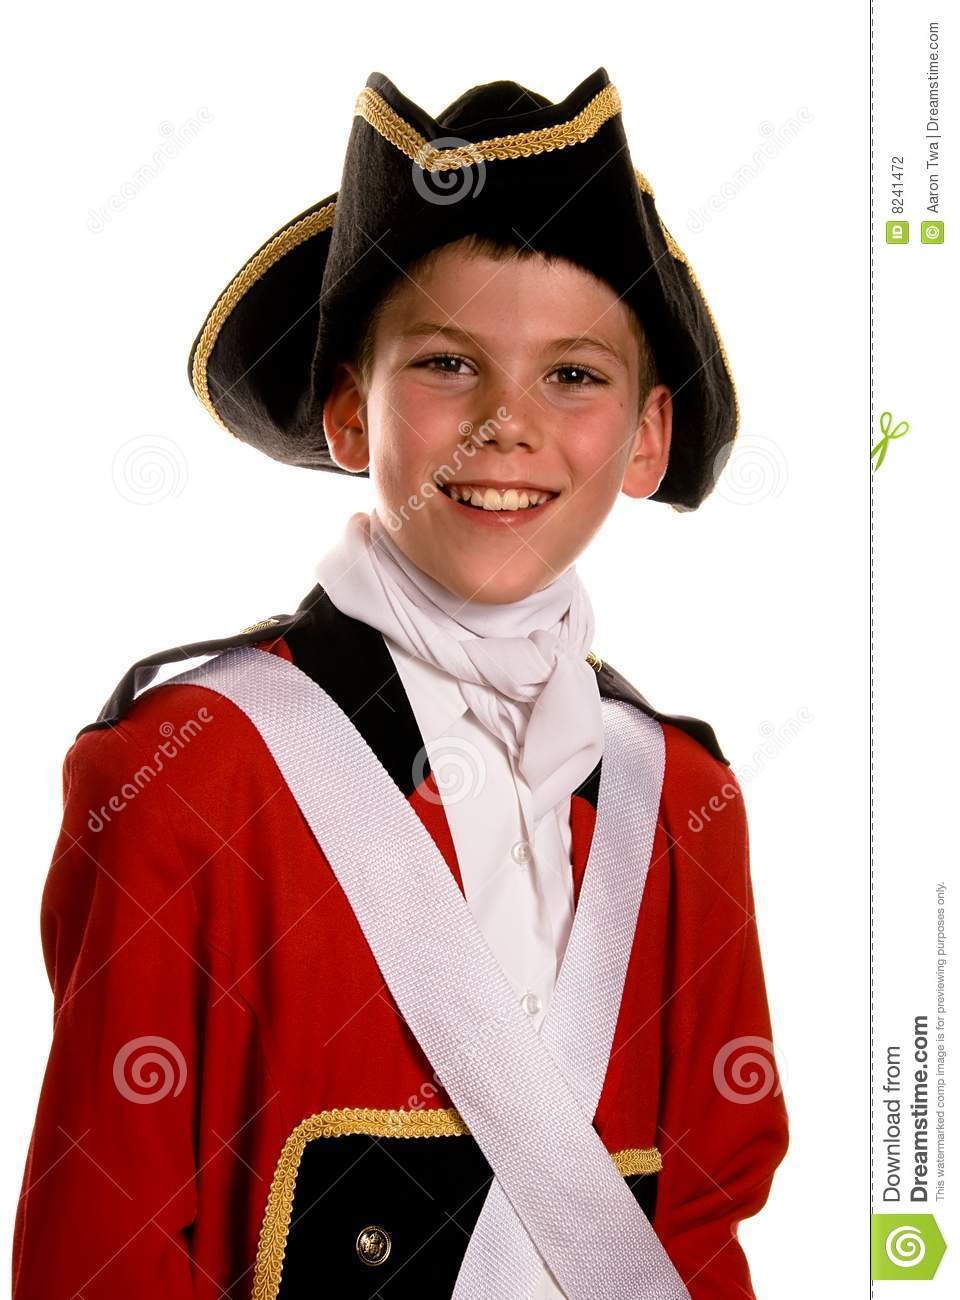 British Army Red Coat  sc 1 st  Dreamstime.com & British Army Red Coat stock photo. Image of armed culture - 8241472